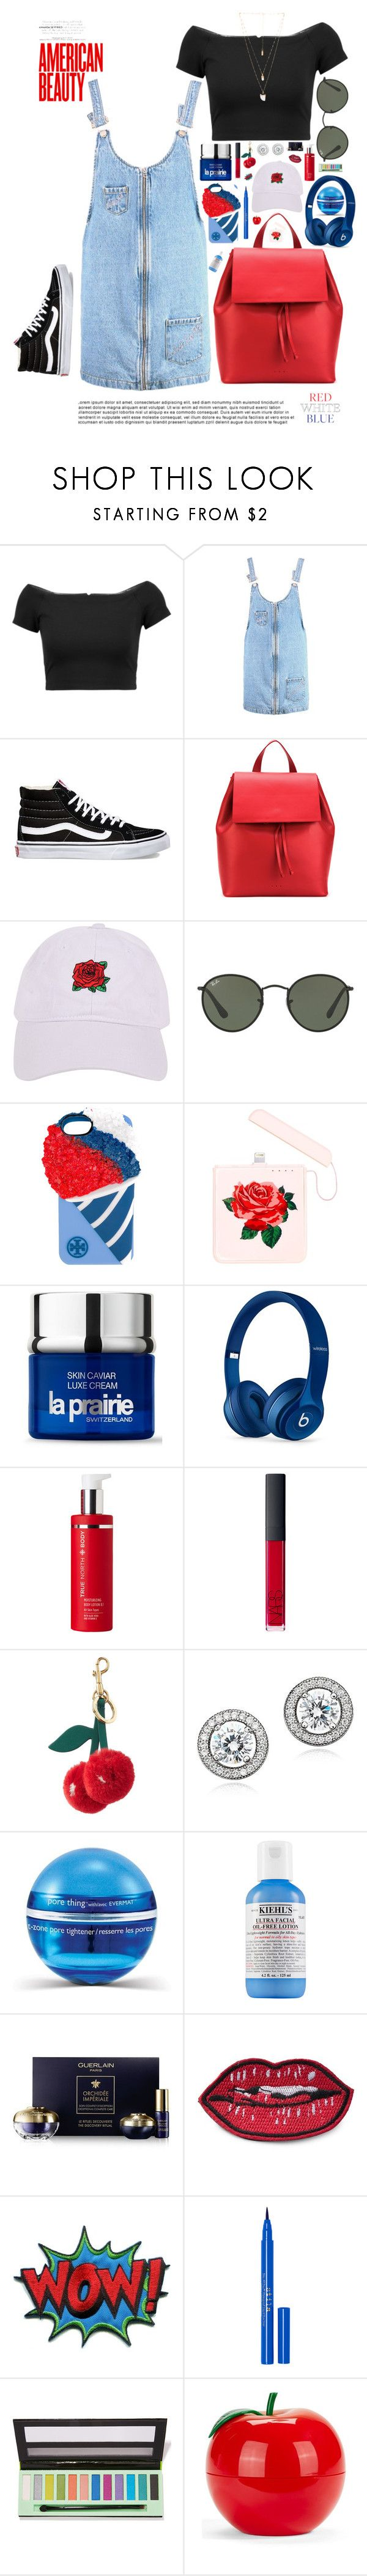 """America the Beautiful🇺🇸"" by imaniasaboor ❤ liked on Polyvore featuring Alice + Olivia, Boohoo, Vans, Aesther Ekme, Armitage Avenue, Ray-Ban, Tory Burch, ban.do, La Prairie and Beats by Dr. Dre"